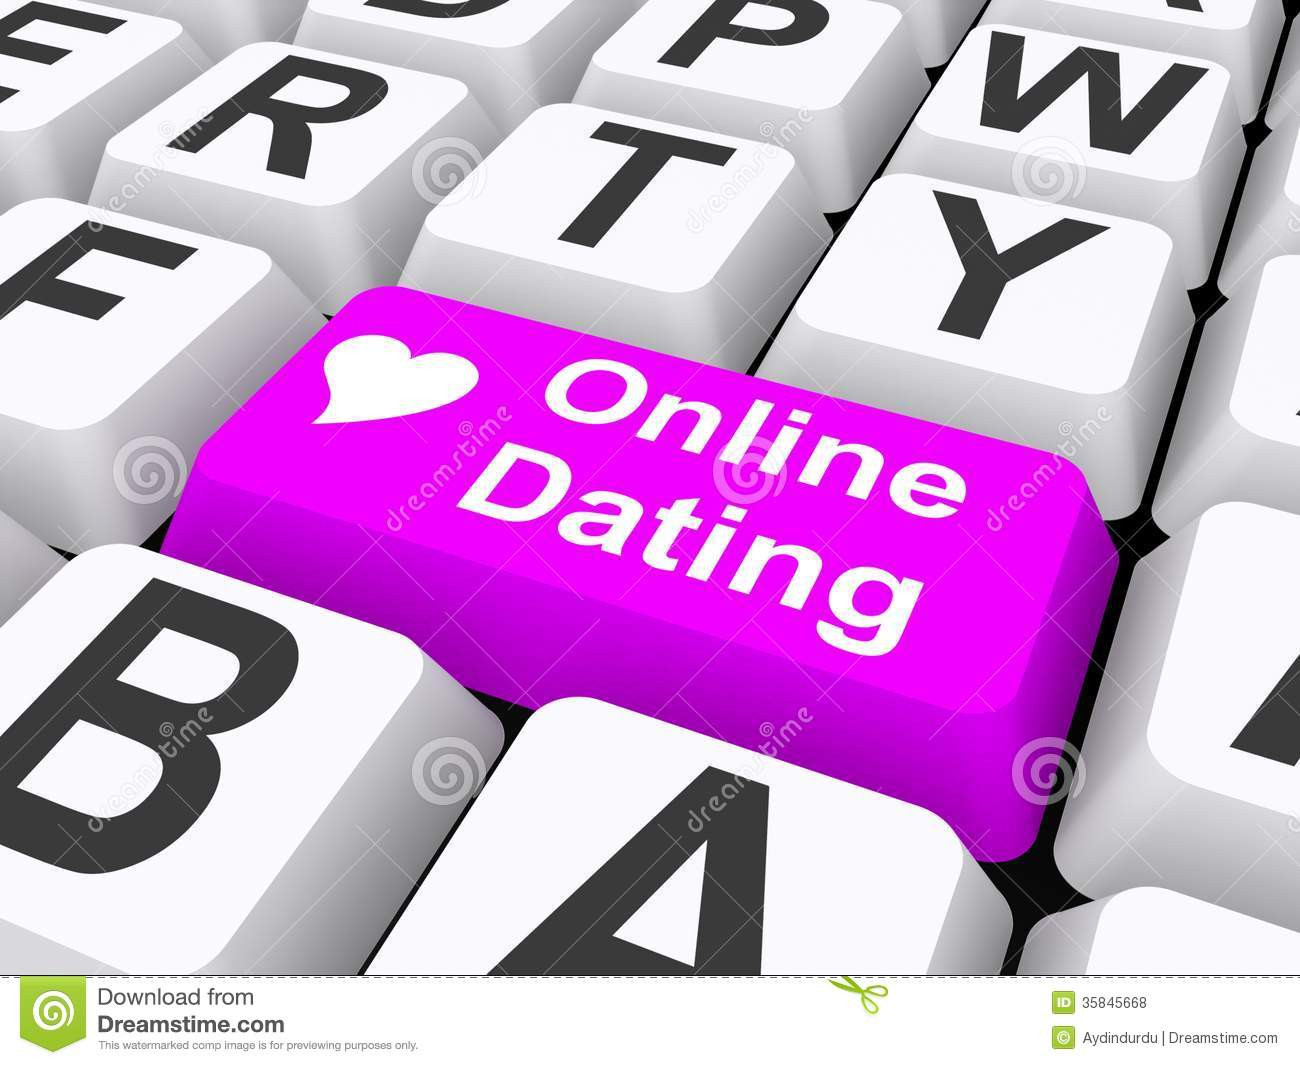 free online personals in eastabuchie Sex worker personals female escorts in eastabuchie ms 39436 january 29, 2016 prior to writing this blog i did a quick online search.